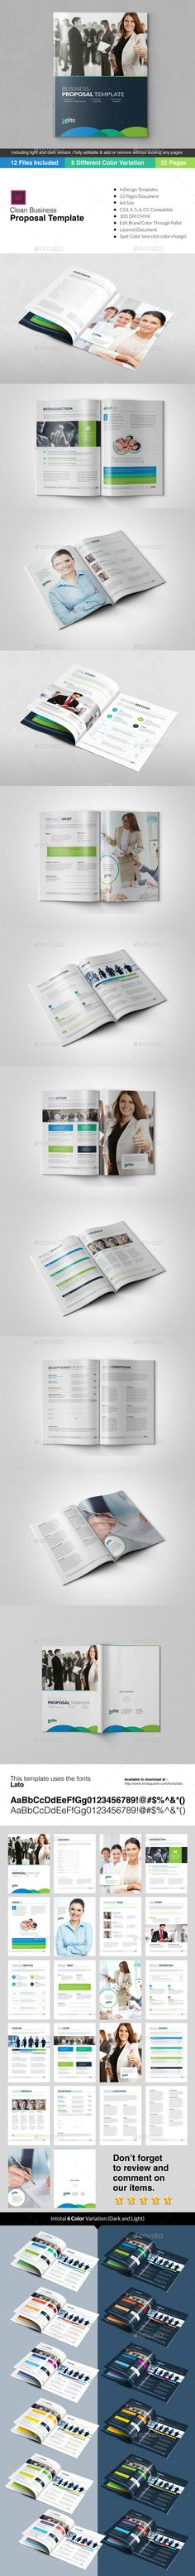 Corporate Executive Business Stationery Print Pack Stationery - travel proposal template